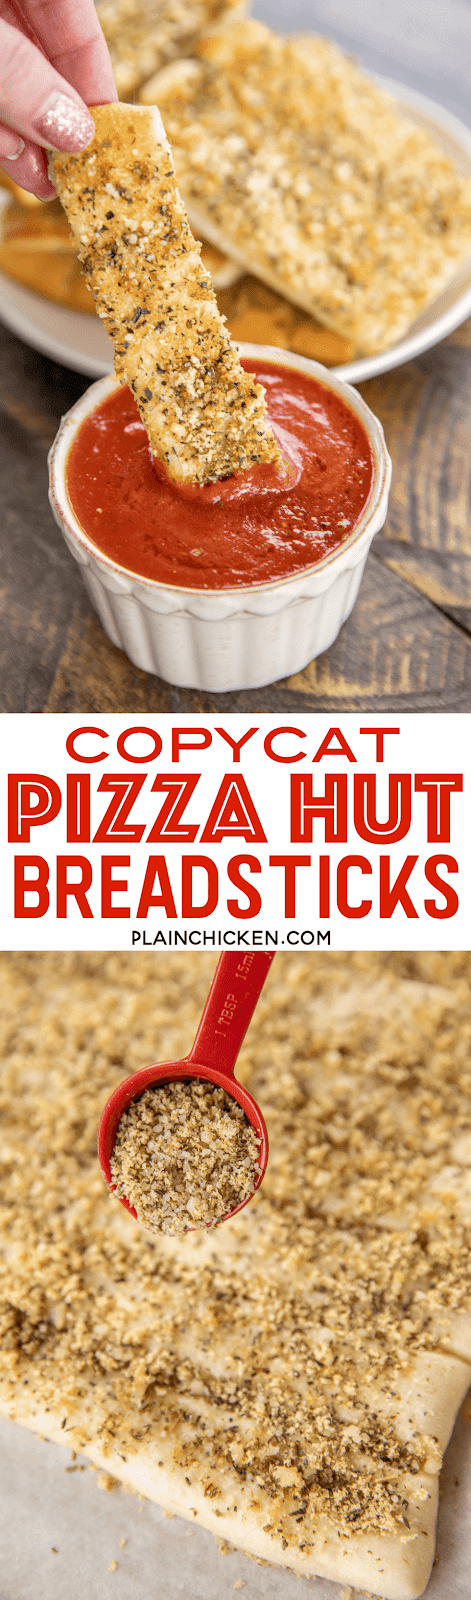 Copycat Pizza Hut Breadsticks - so easy to make and seriously delicious!!! Refrigerated pizza dough topped with parmesan cheese, garlic powder, salt, onion powder, oregano and basil. Dip in warm pizza sauce. Tastes just like the original! Ready to eat in under 20 minutes! #breadsticks #pizzahut #copycat